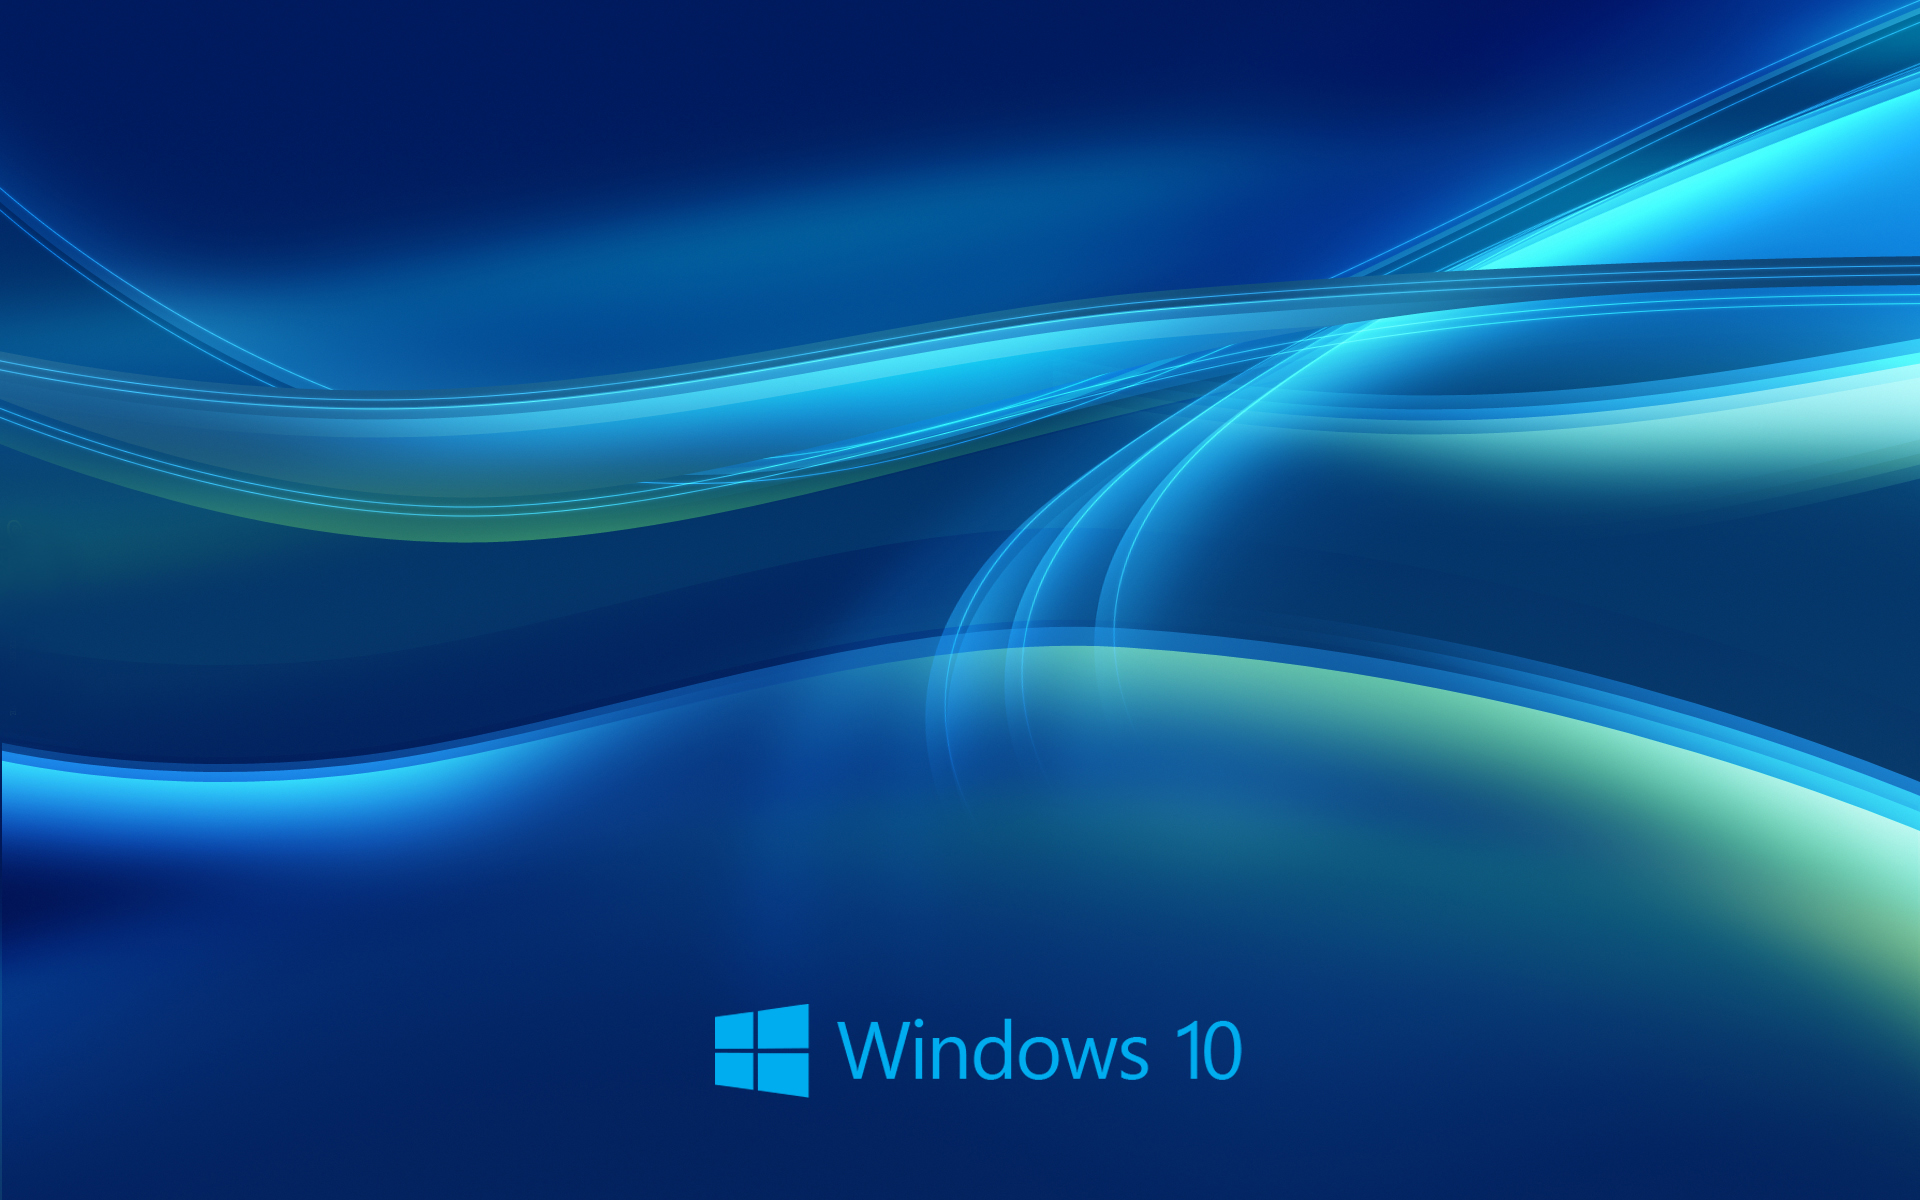 Windows 10 Logo Wallpaper and Theme Pack All for Windows 10 1920x1200